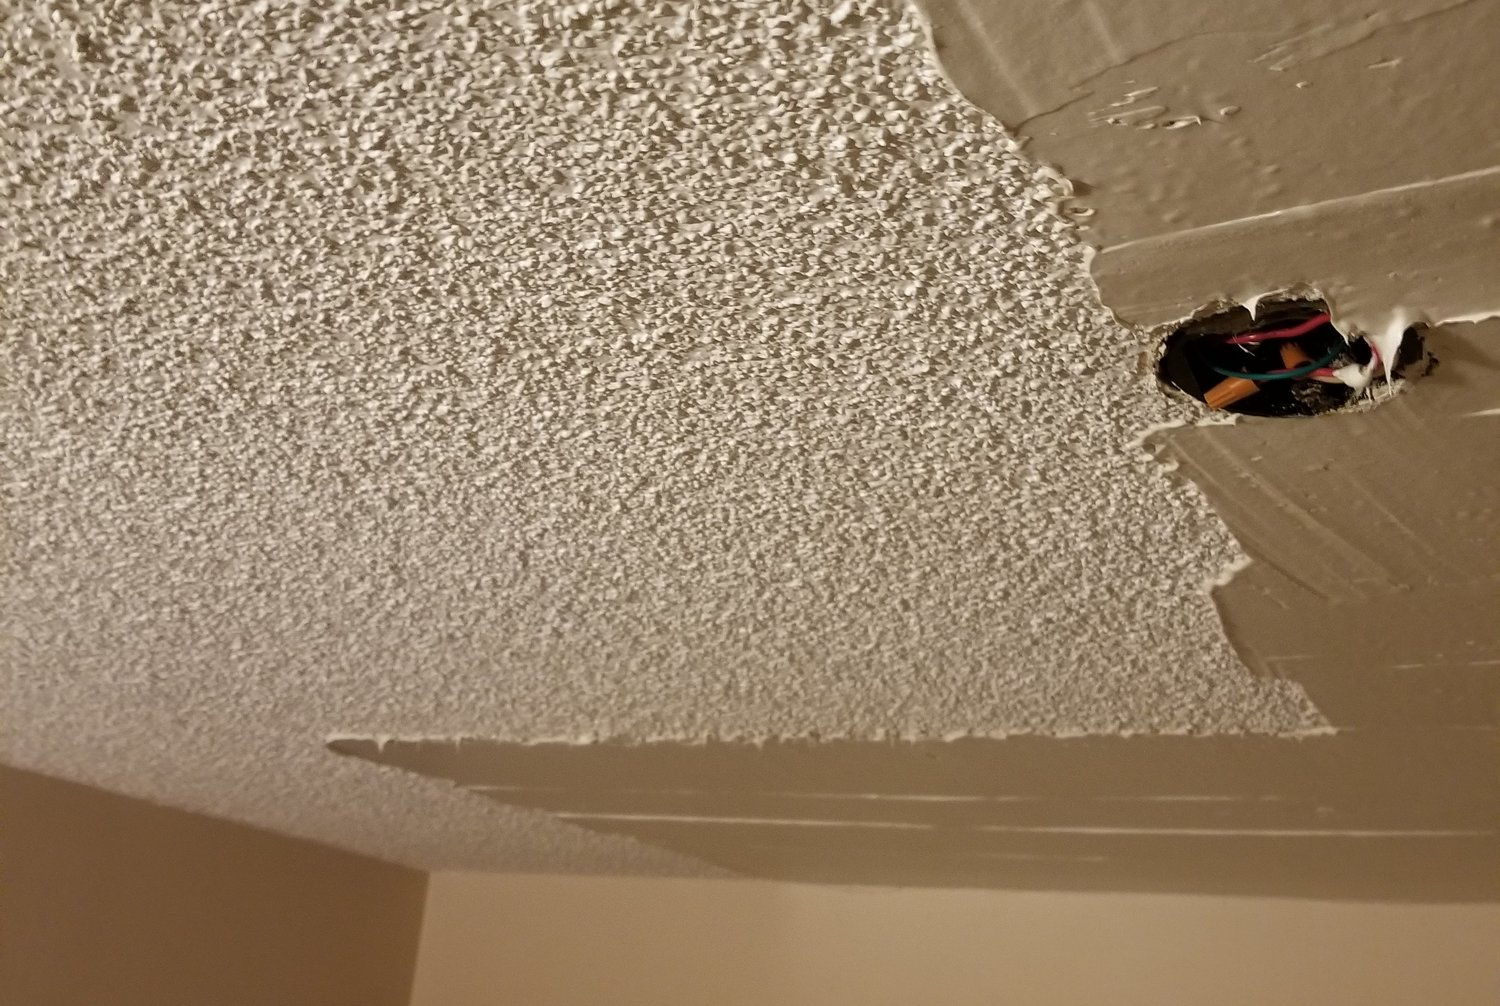 Popcorn Ceiling Removal-College Station TX Professional Painting Contractors-We offer Residential & Commercial Painting, Interior Painting, Exterior Painting, Primer Painting, Industrial Painting, Professional Painters, Institutional Painters, and more.